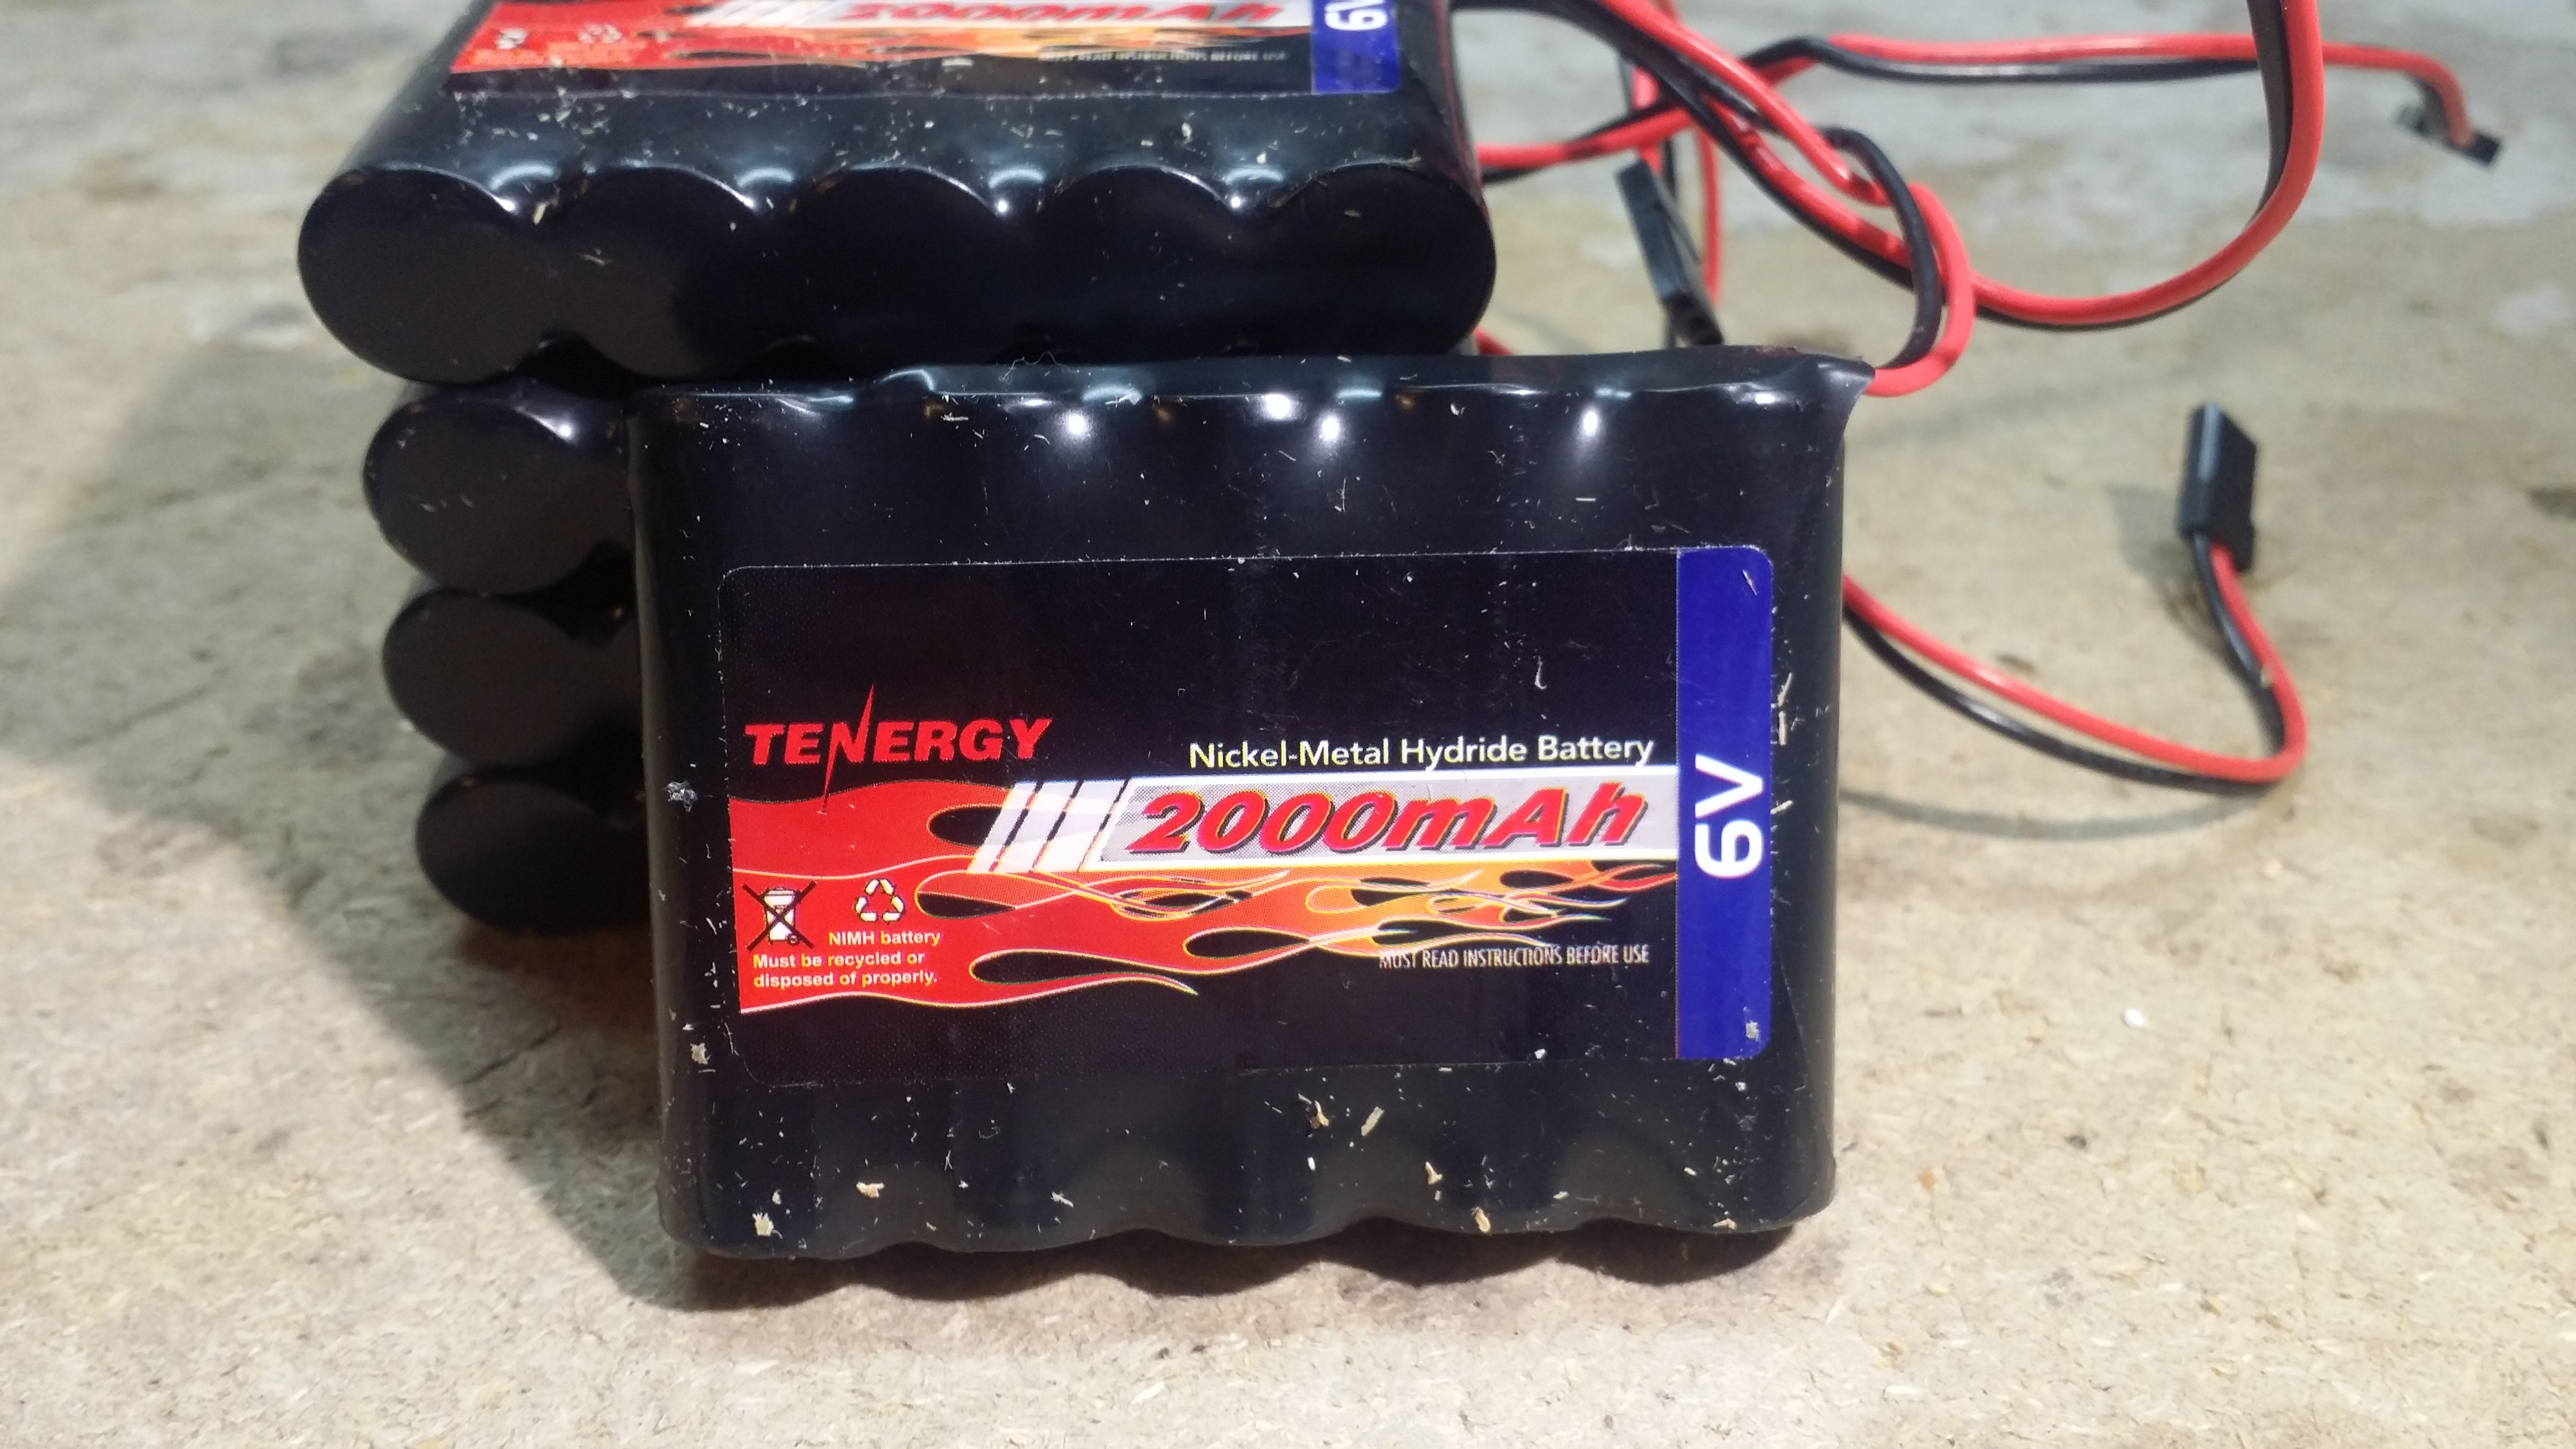 Click image for larger version  Name:batterys tenergy.jpg Views:24 Size:2.47 MB ID:2201672